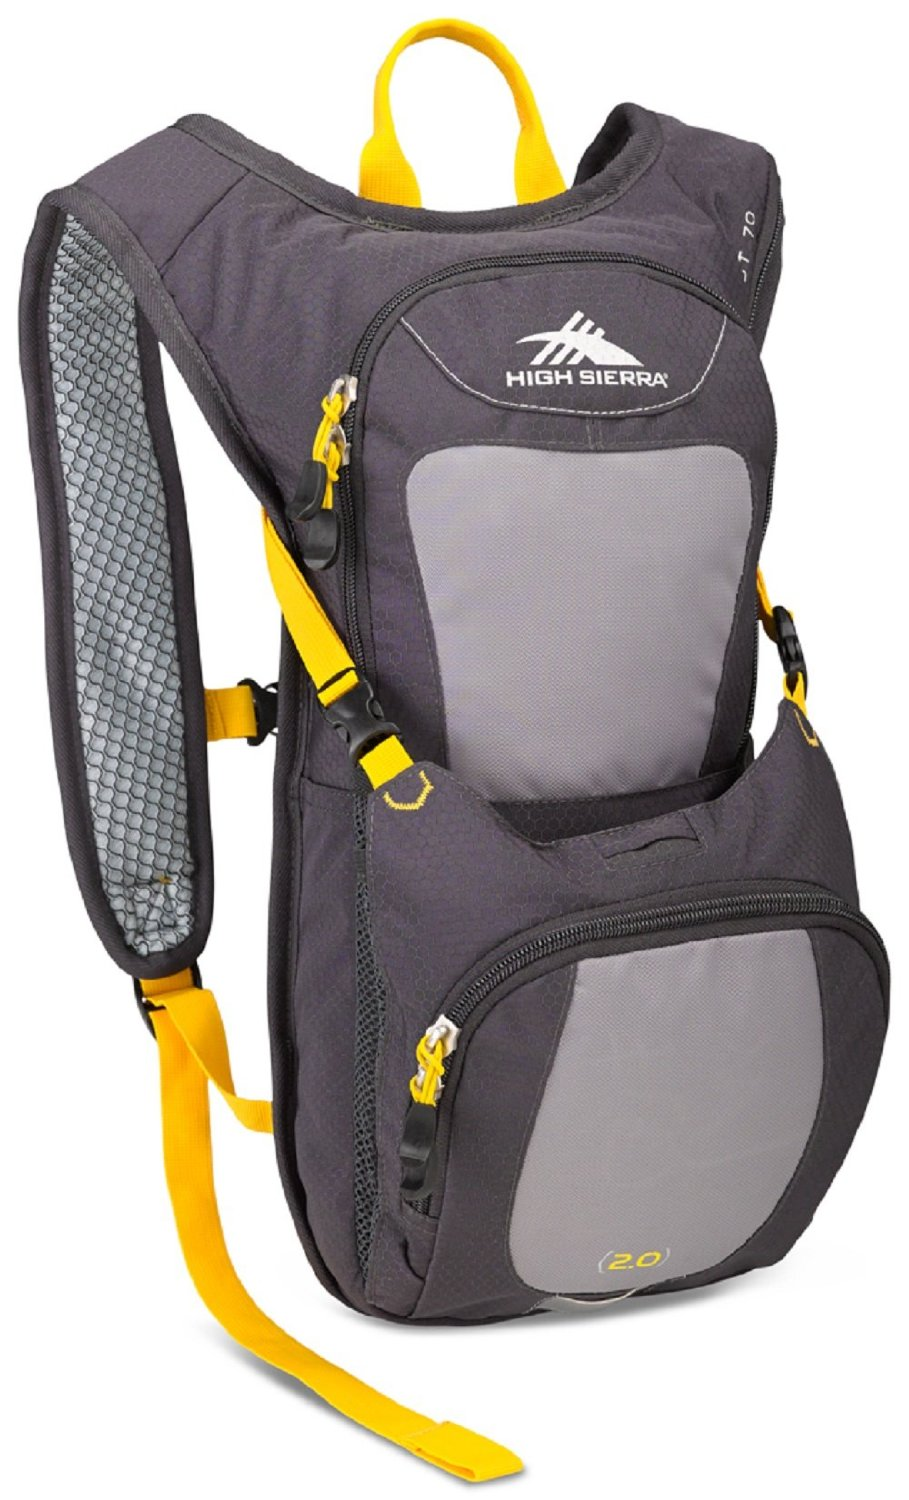 High Sierra Quickshot 70 Hydration Backpack Pack with 2L BPA Free Bladder: Perfect for Hiking, Running, Cycling, Biking, Climbing, Hunting, and Outdoor Activities